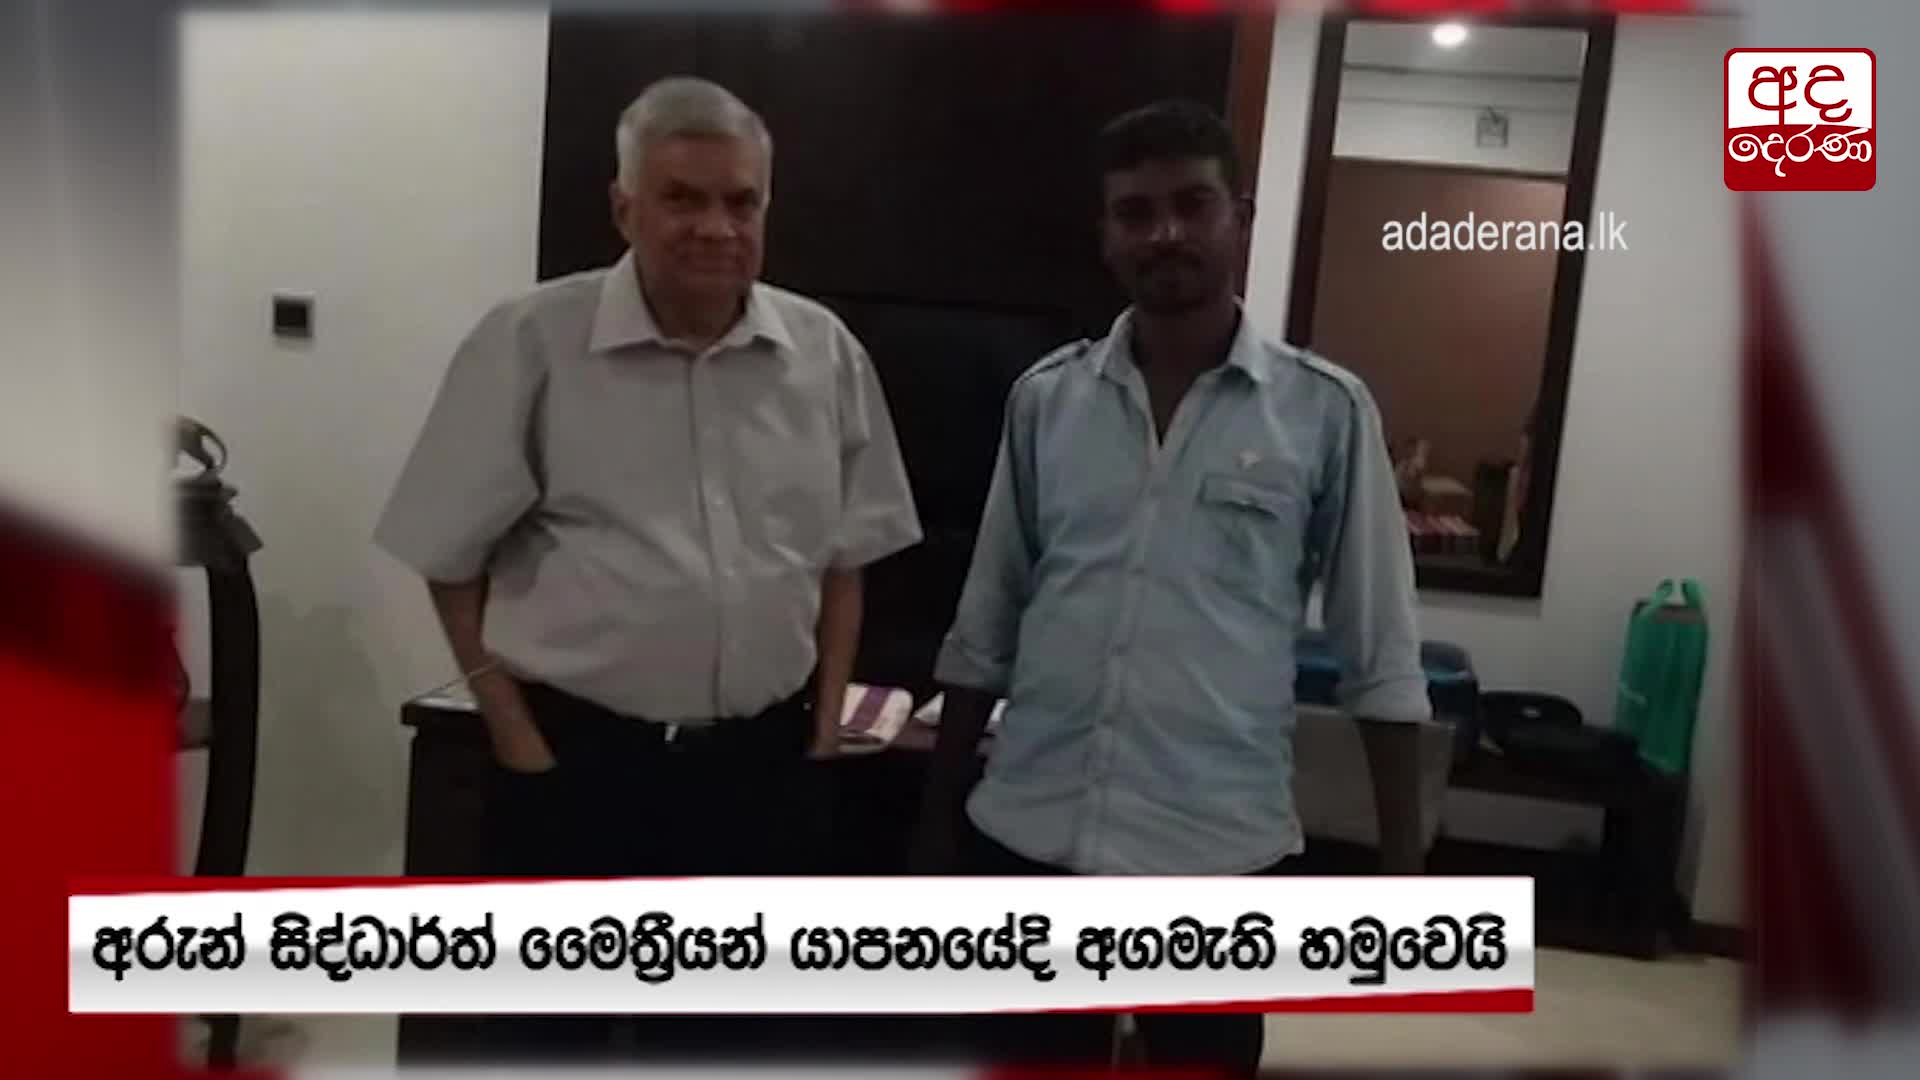 Arun meets Prime Minister in Jaffna